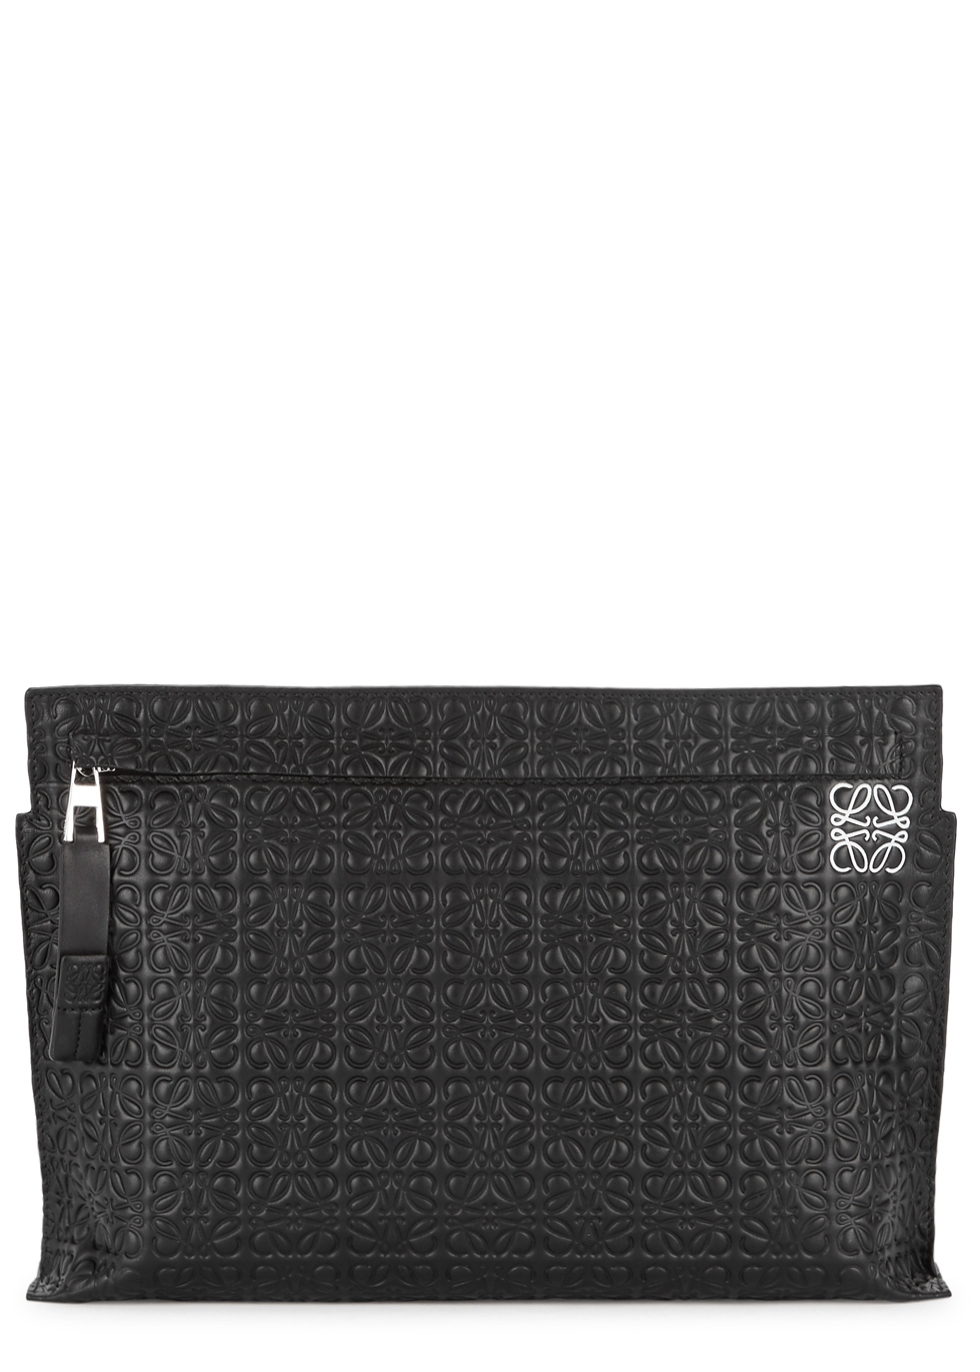 LOEWE BLACK LOGO-EMBOSSED LEATHER POUCH